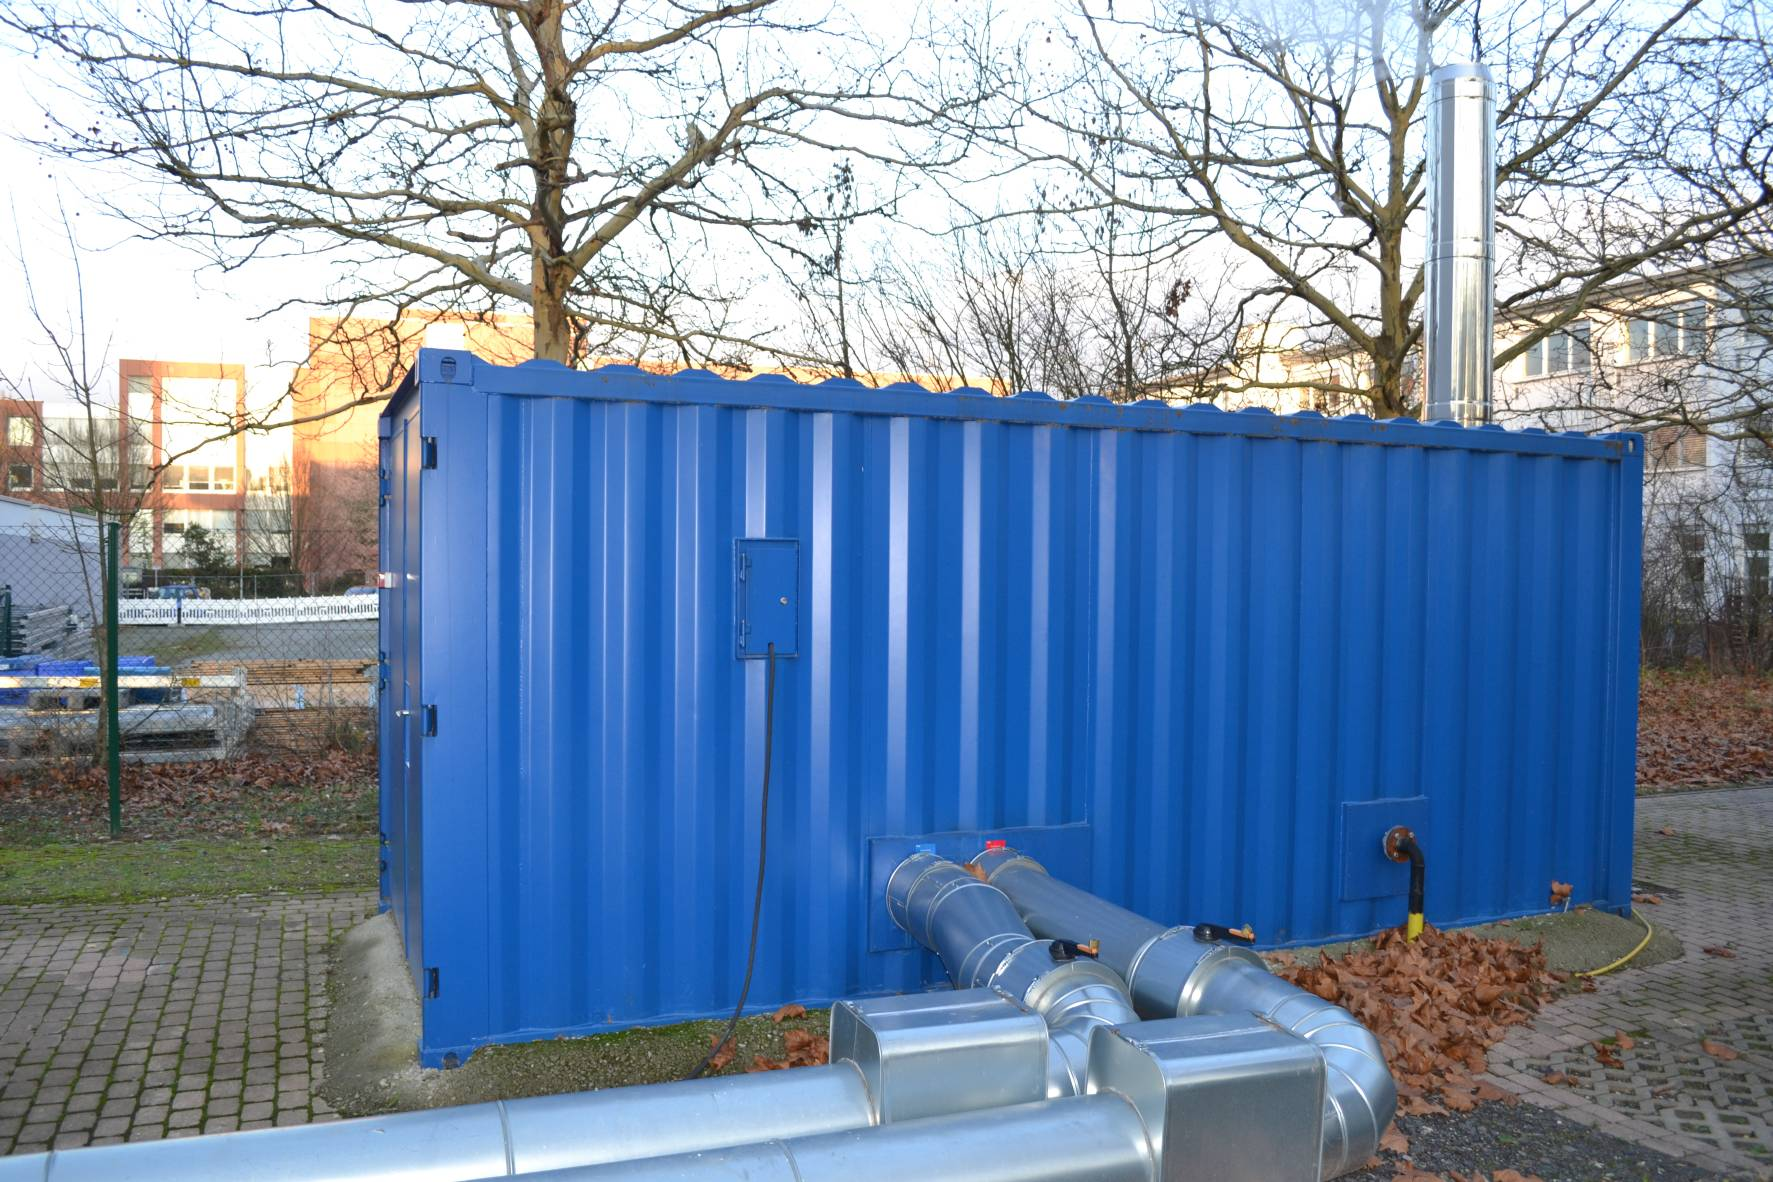 Heizcontainer: 900 kW